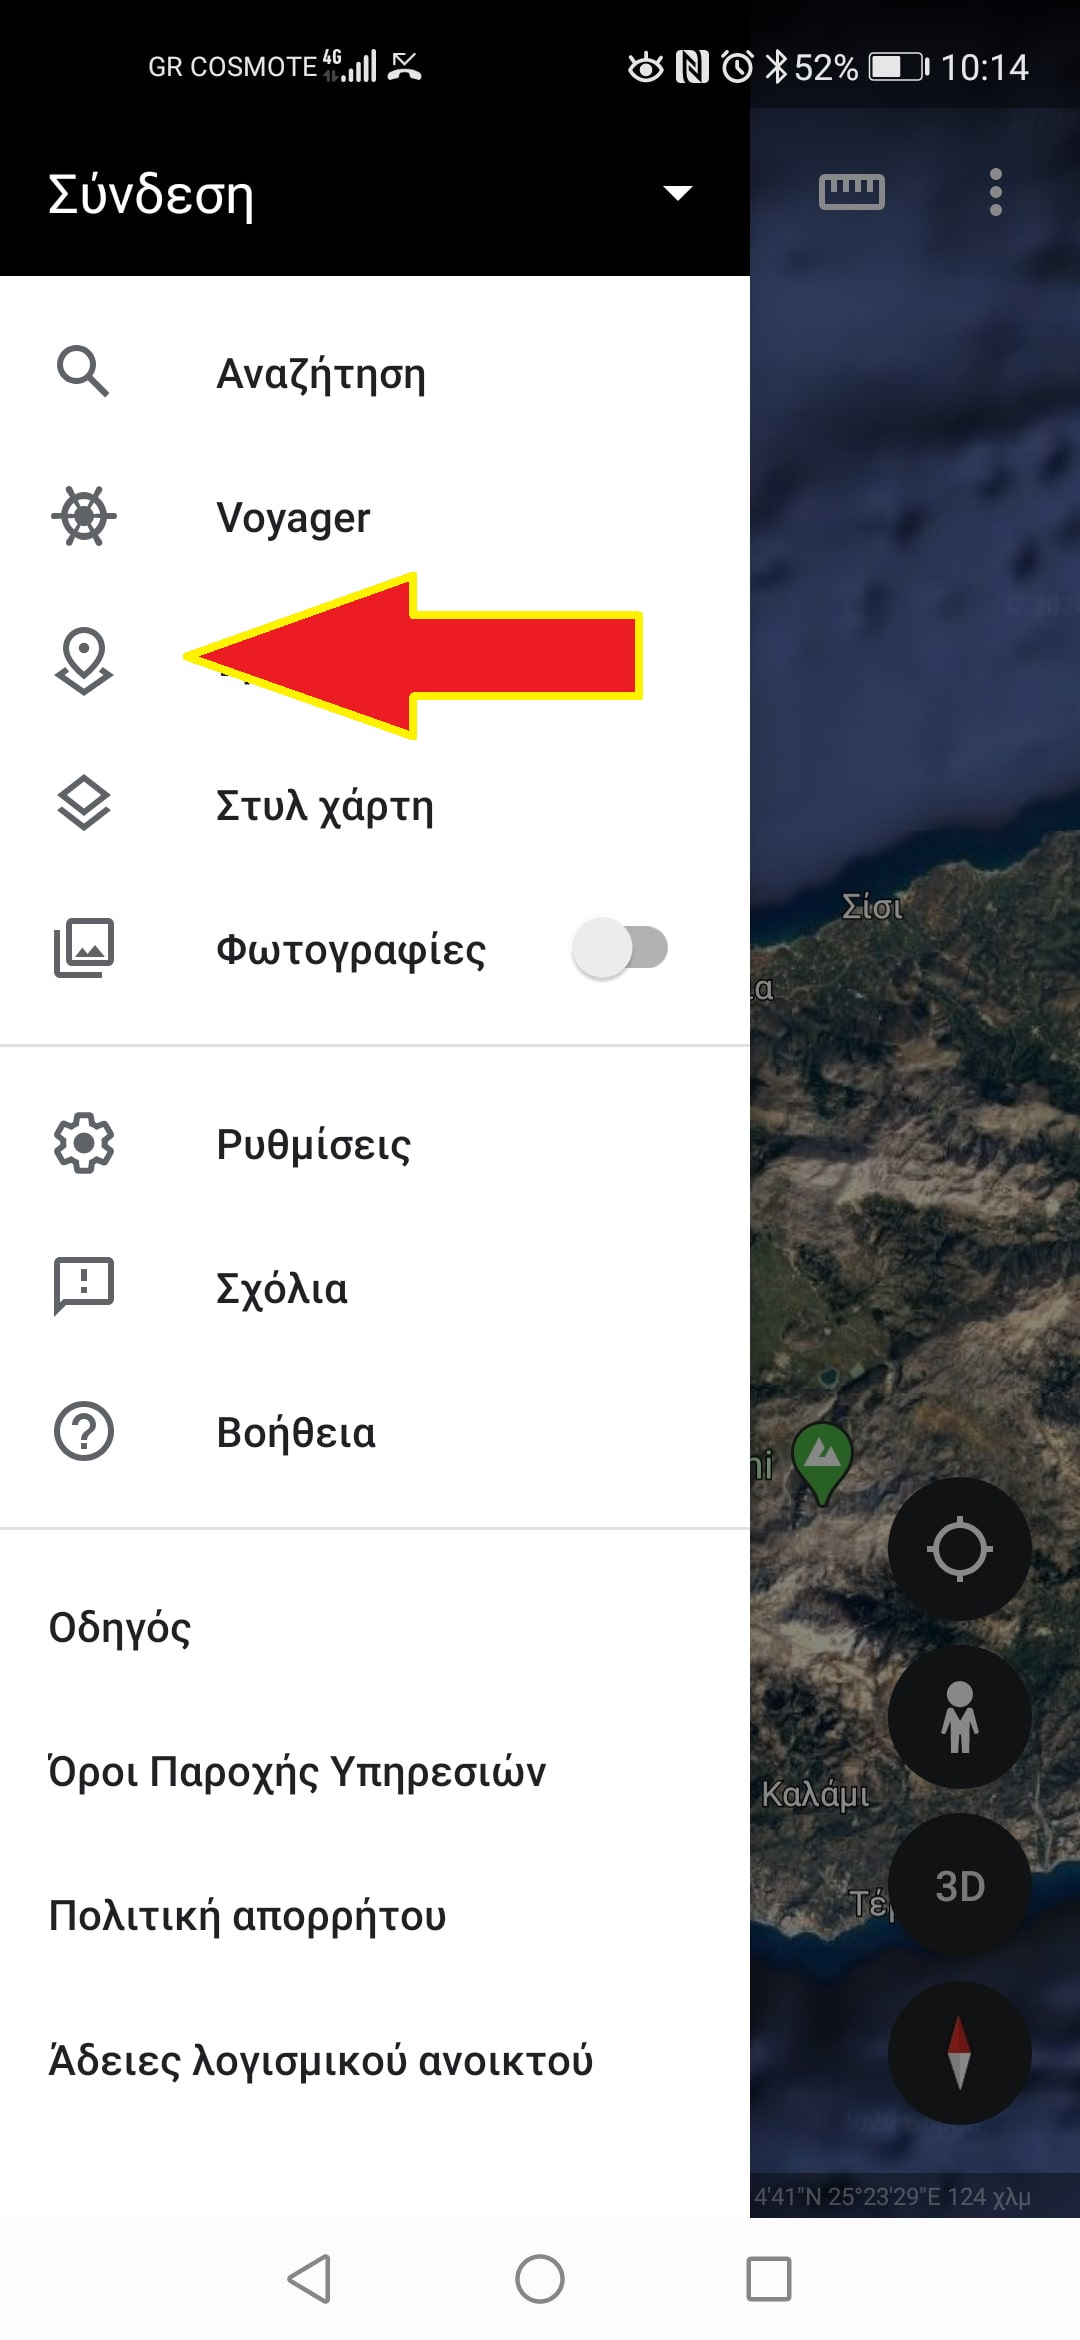 how to use a cyclingcreta map of Crete with google earth 3